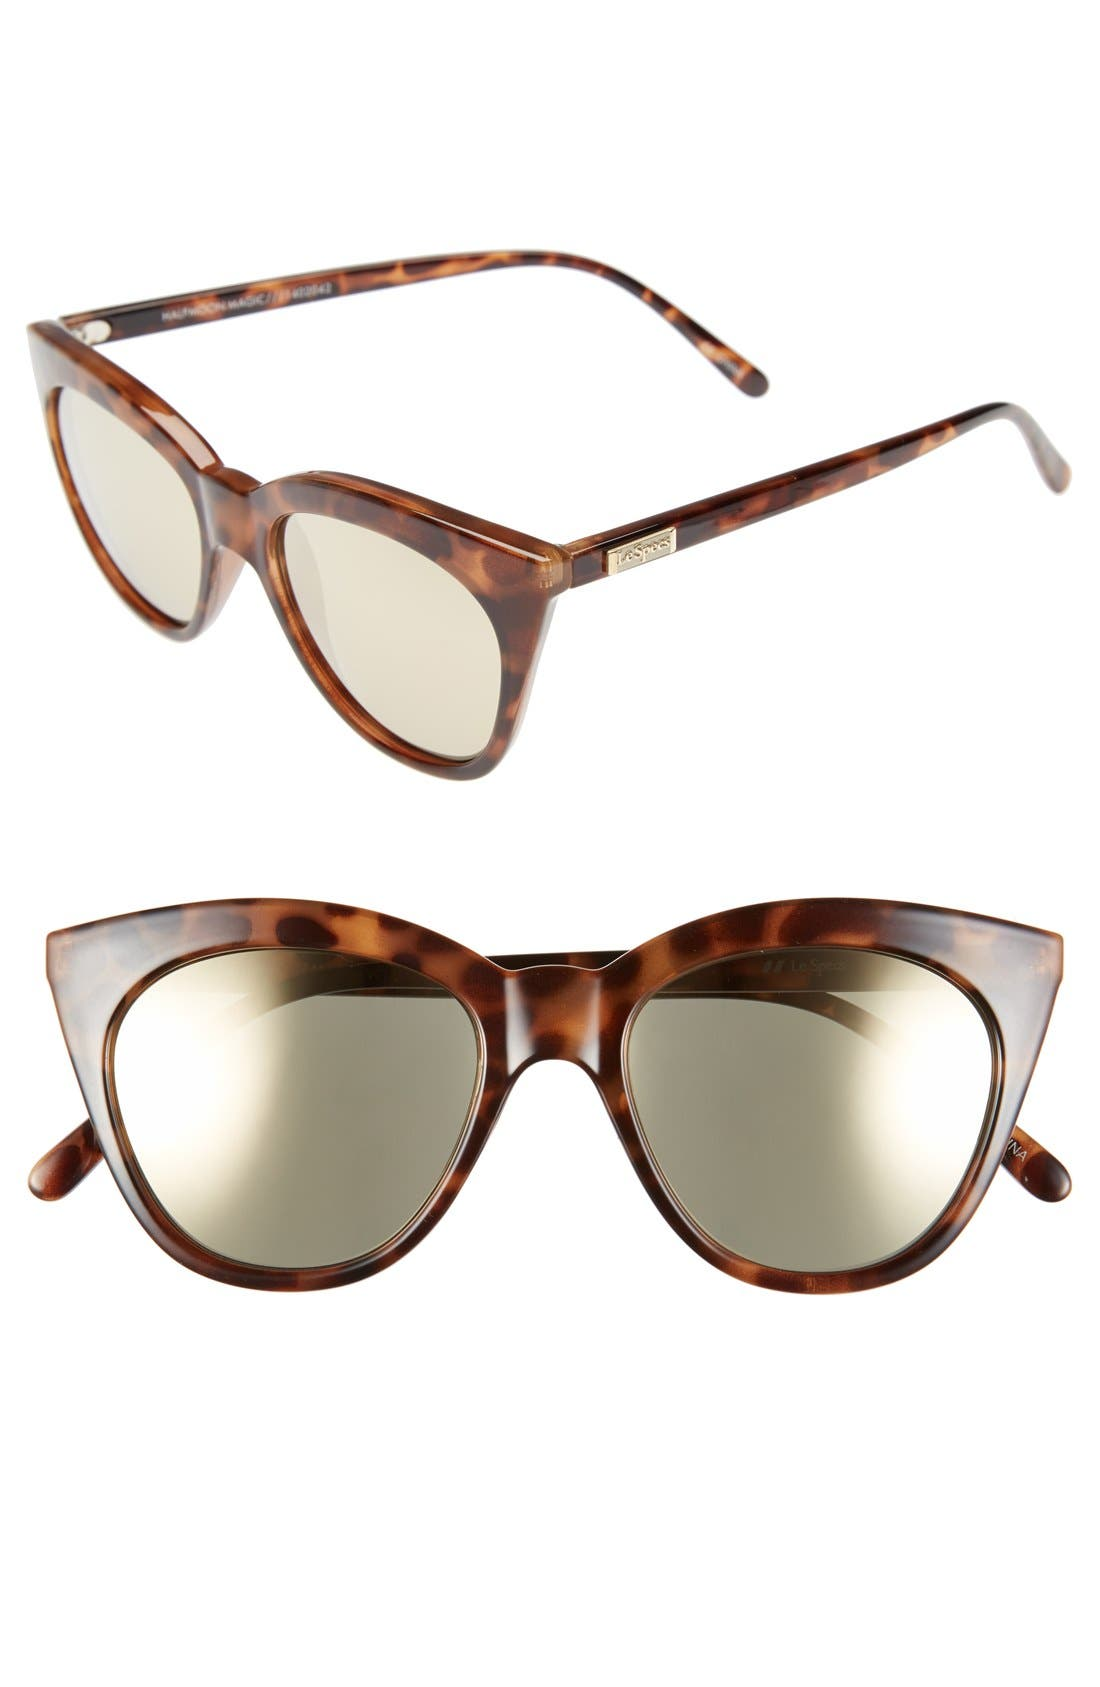 Alternate Image 1 Selected - Le Specs Halfmoon Magic 51mm Cat Eye Sunglasses